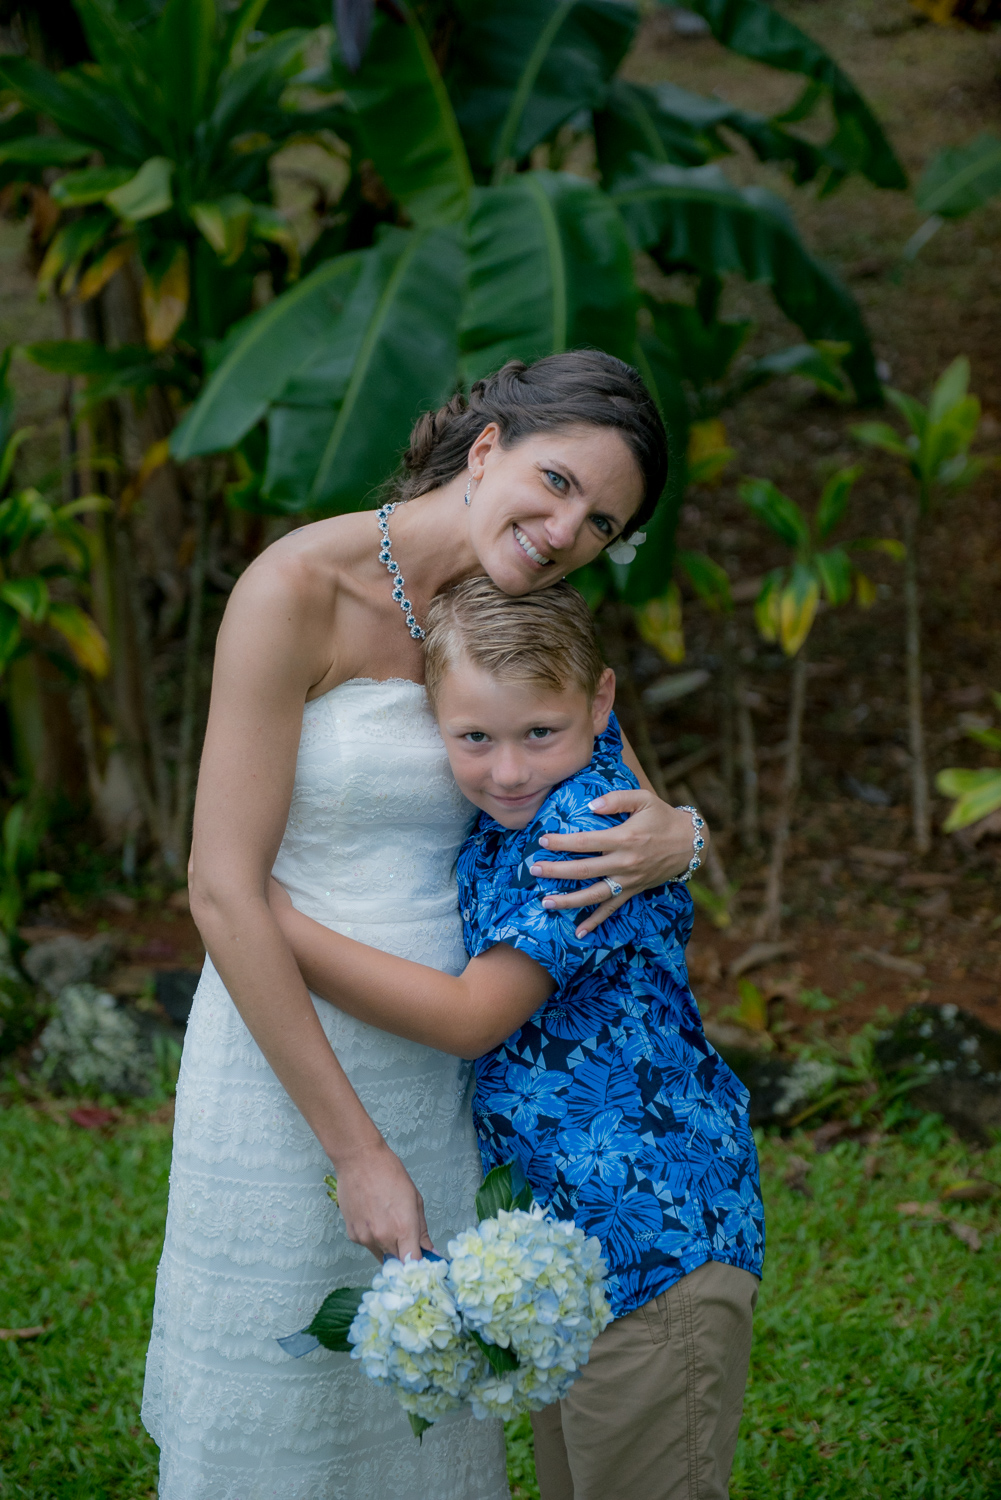 Bride and young boy guest at Heeia Pier Wedding